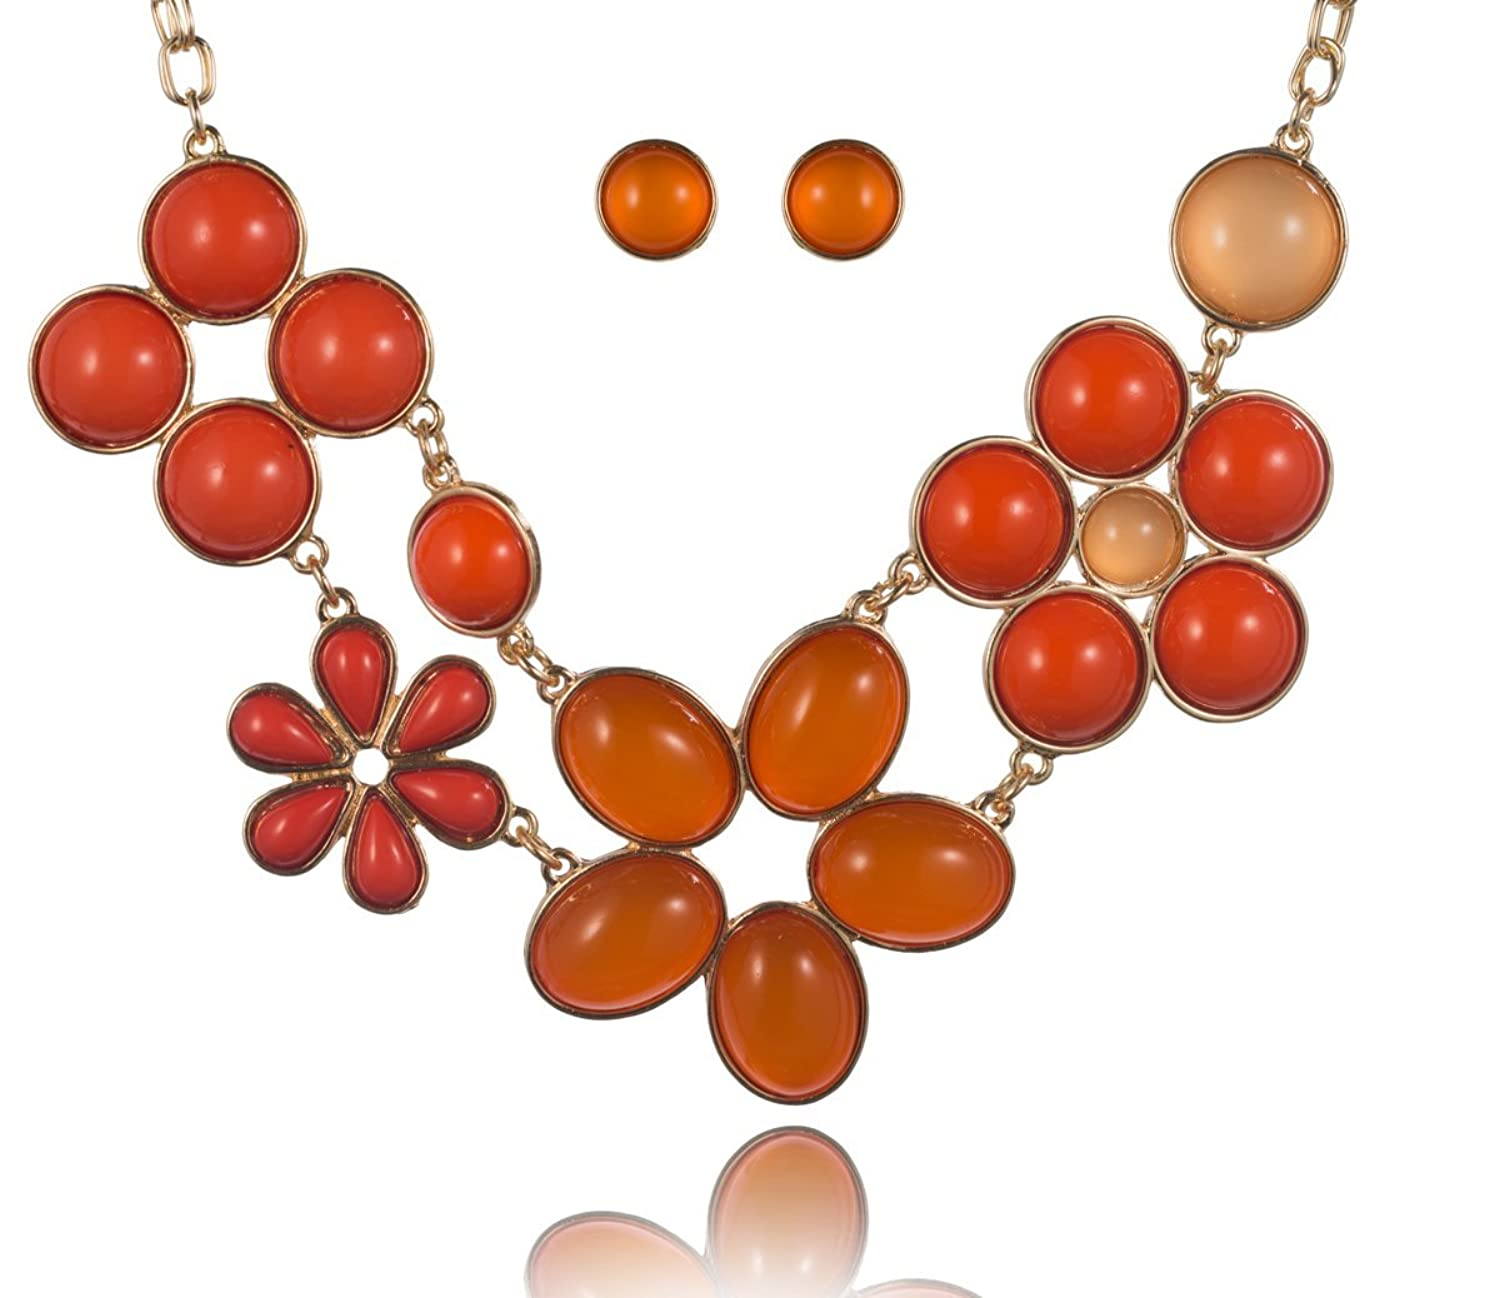 Flower Theme Designer Necklace Set with Earrings by Jewelry Nexus